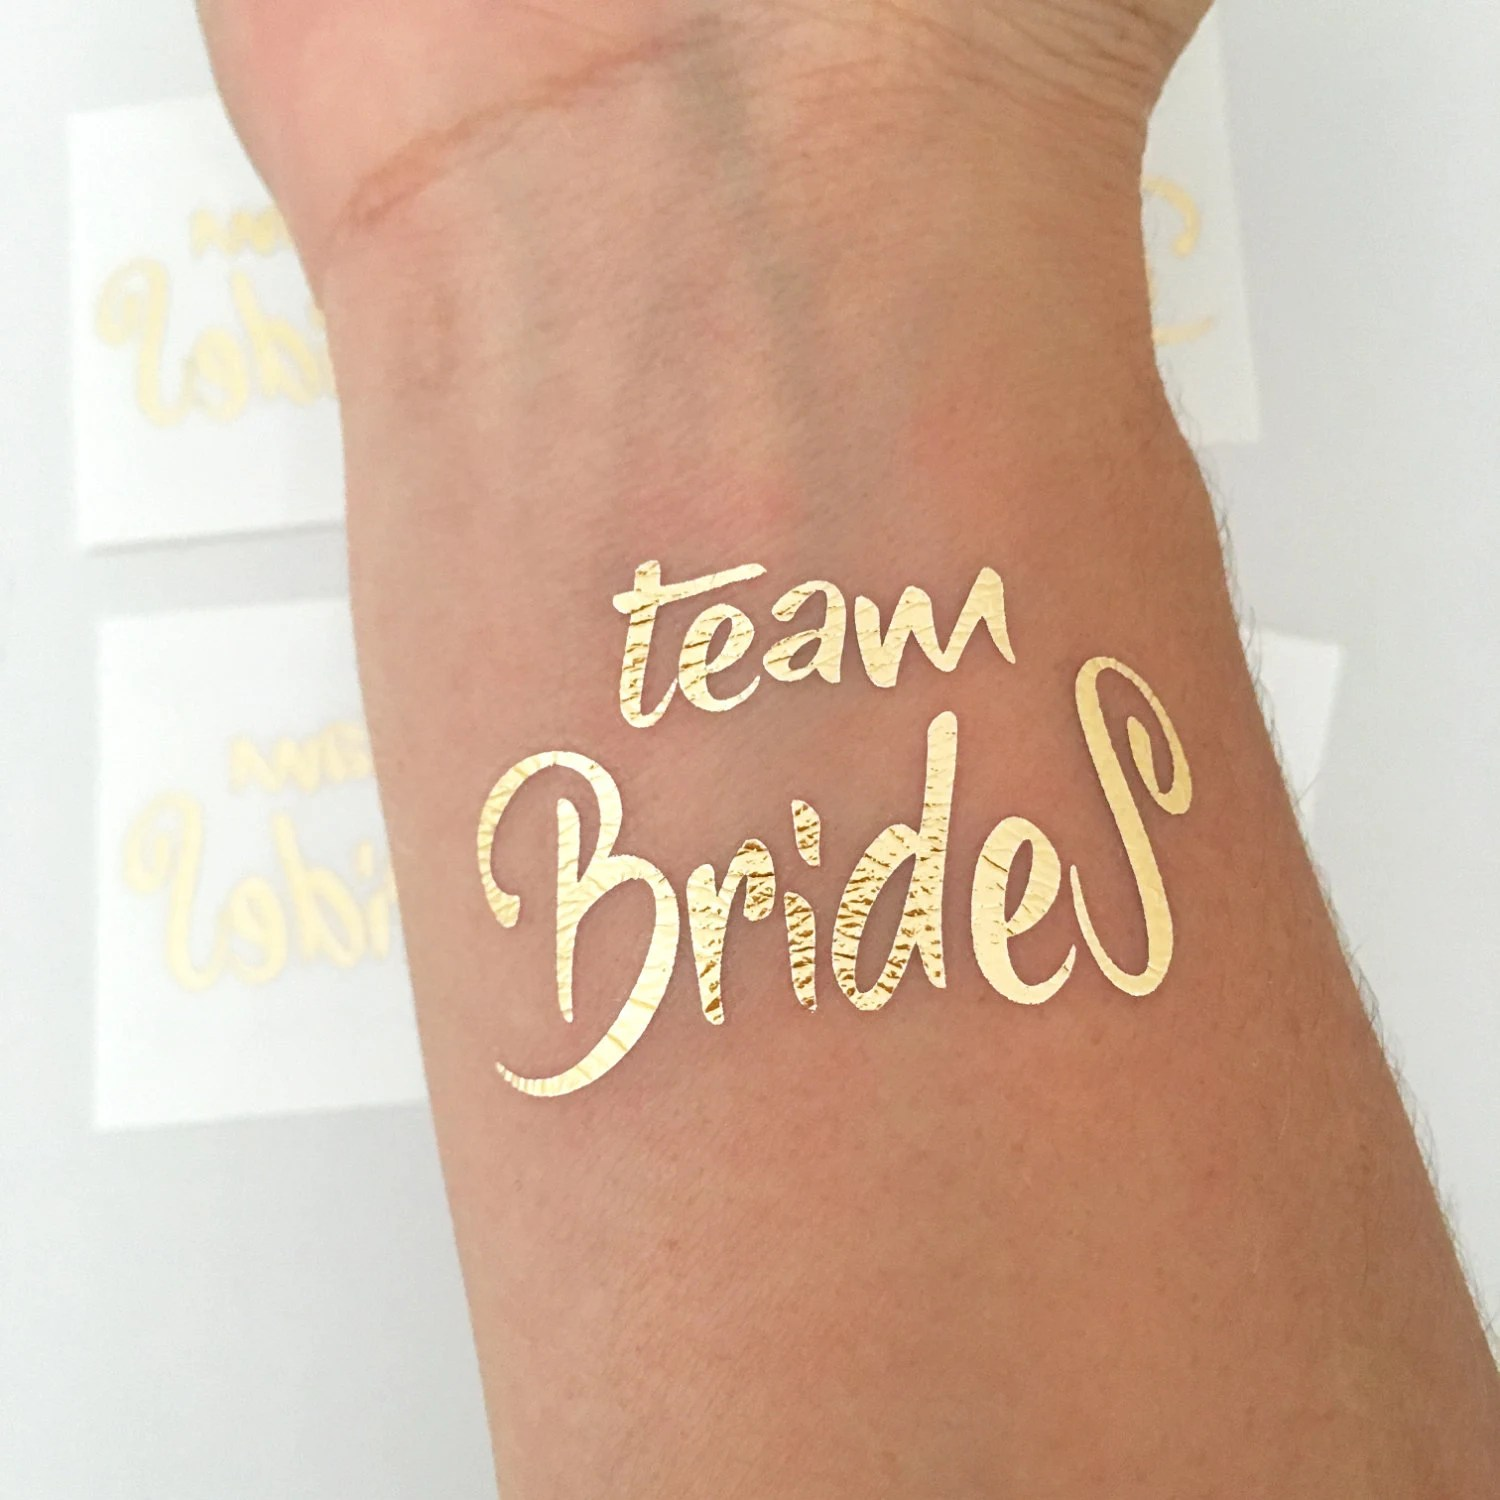 lesbian wedding lesbian wedding bands Lesbian wedding same sex marriage mrs mrs lesbian bachelorette party lesbian party gold tattoo